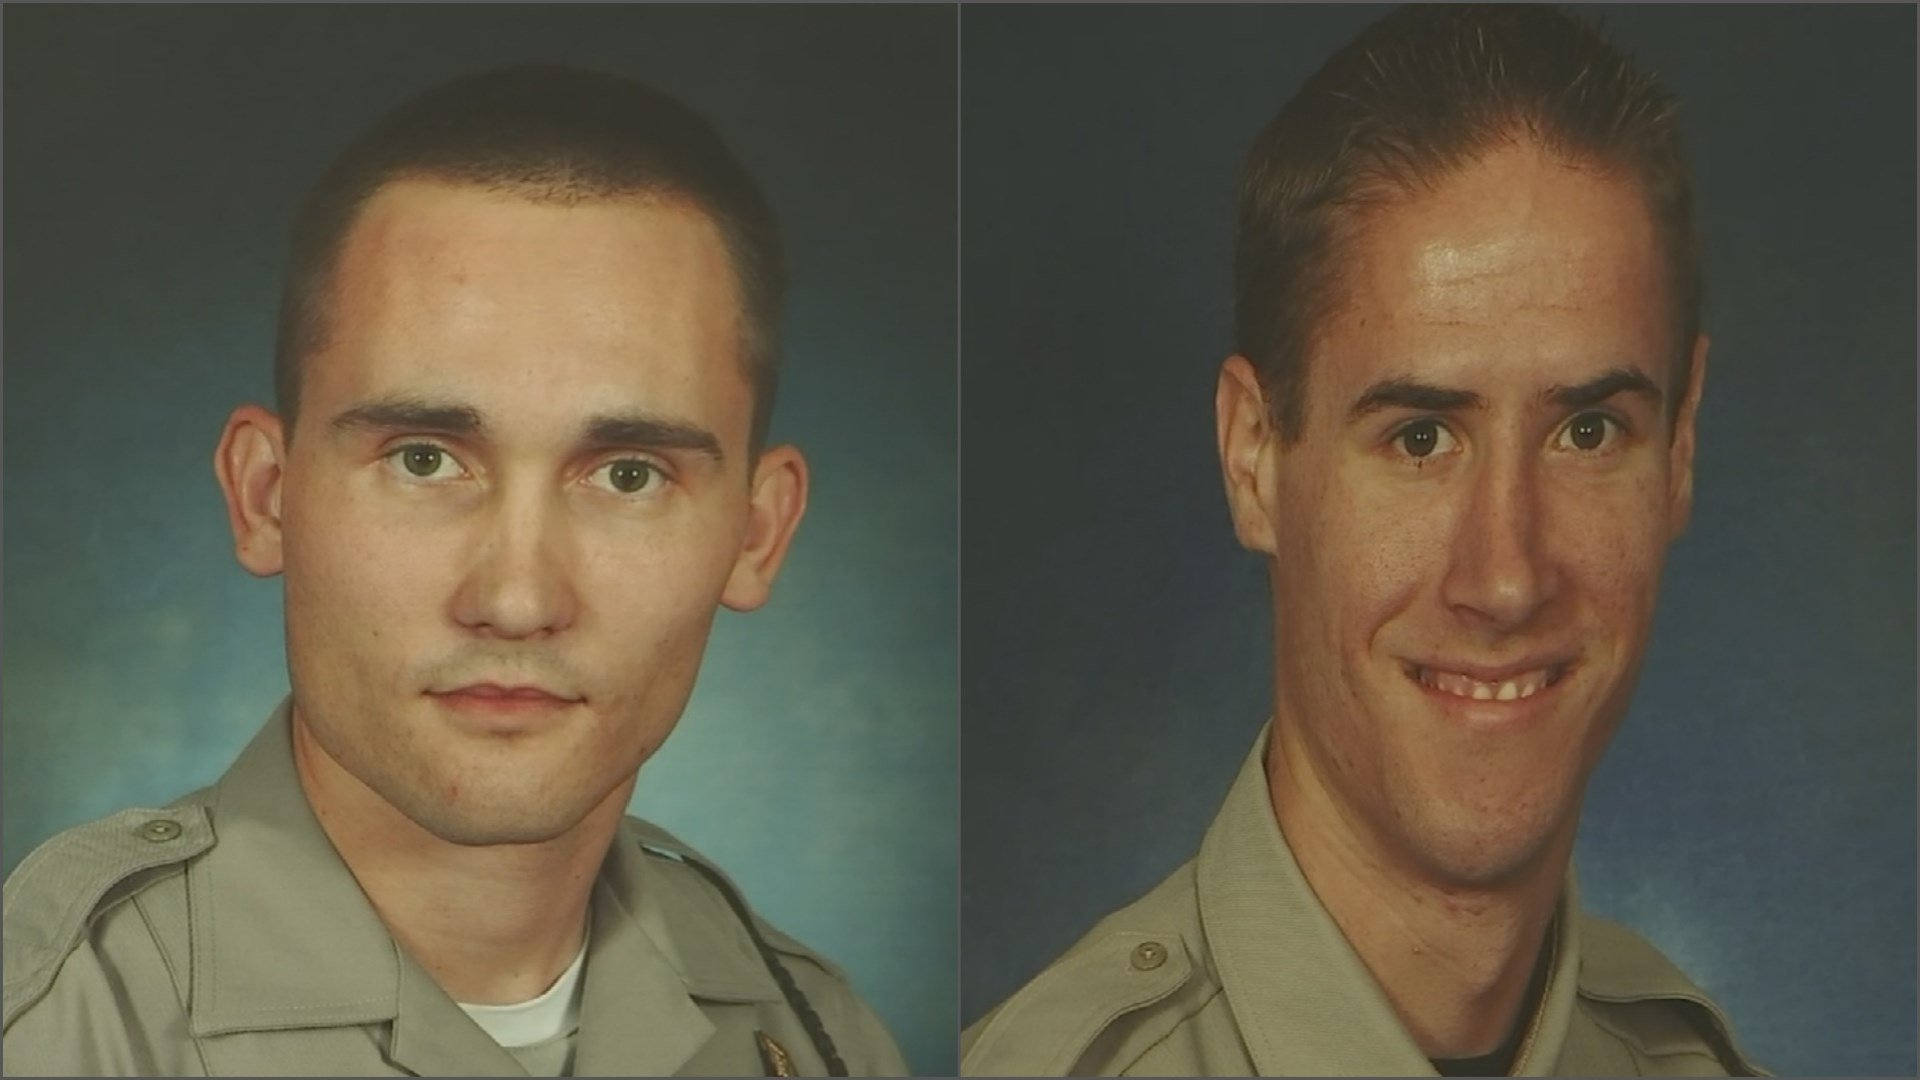 Trooper Dalin Dorris (left) was shot in the shoulder. Trooper Sean Rodecap was injured during the scuffle. (Source: Dept. of Public Safey)